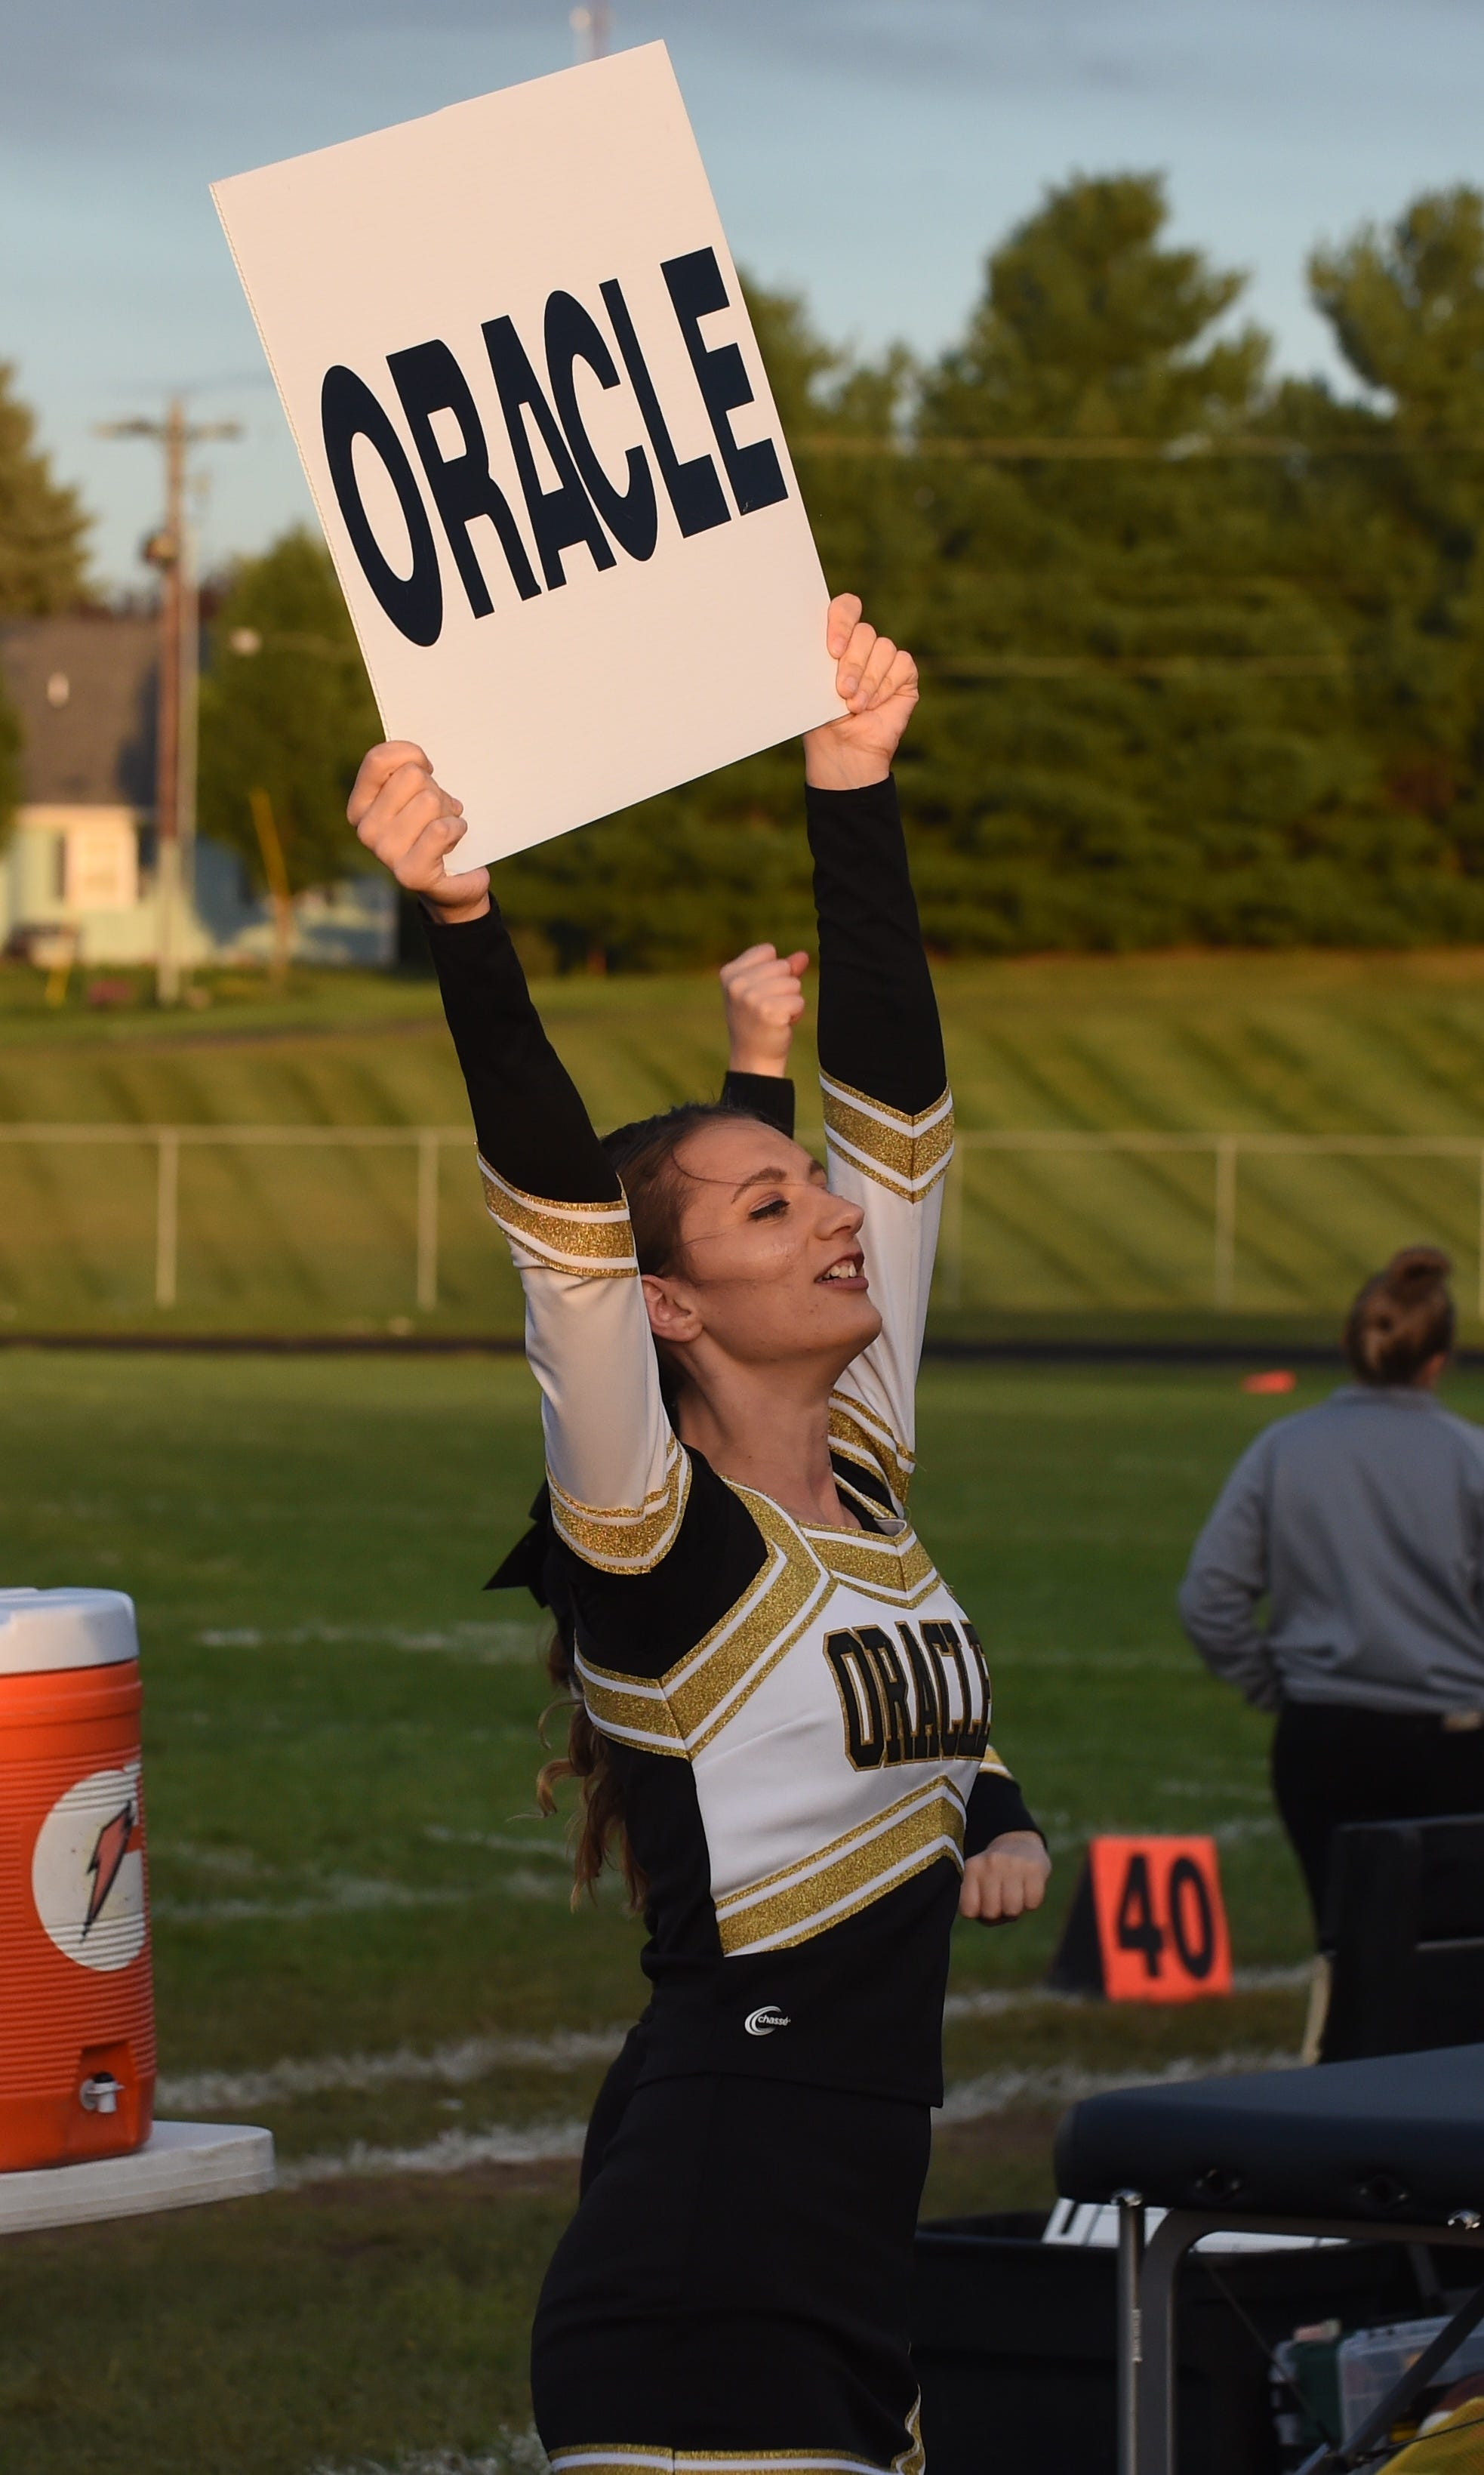 Scenes from Friday's Delphi homecoming as the Oracles dispatch the Vikings.